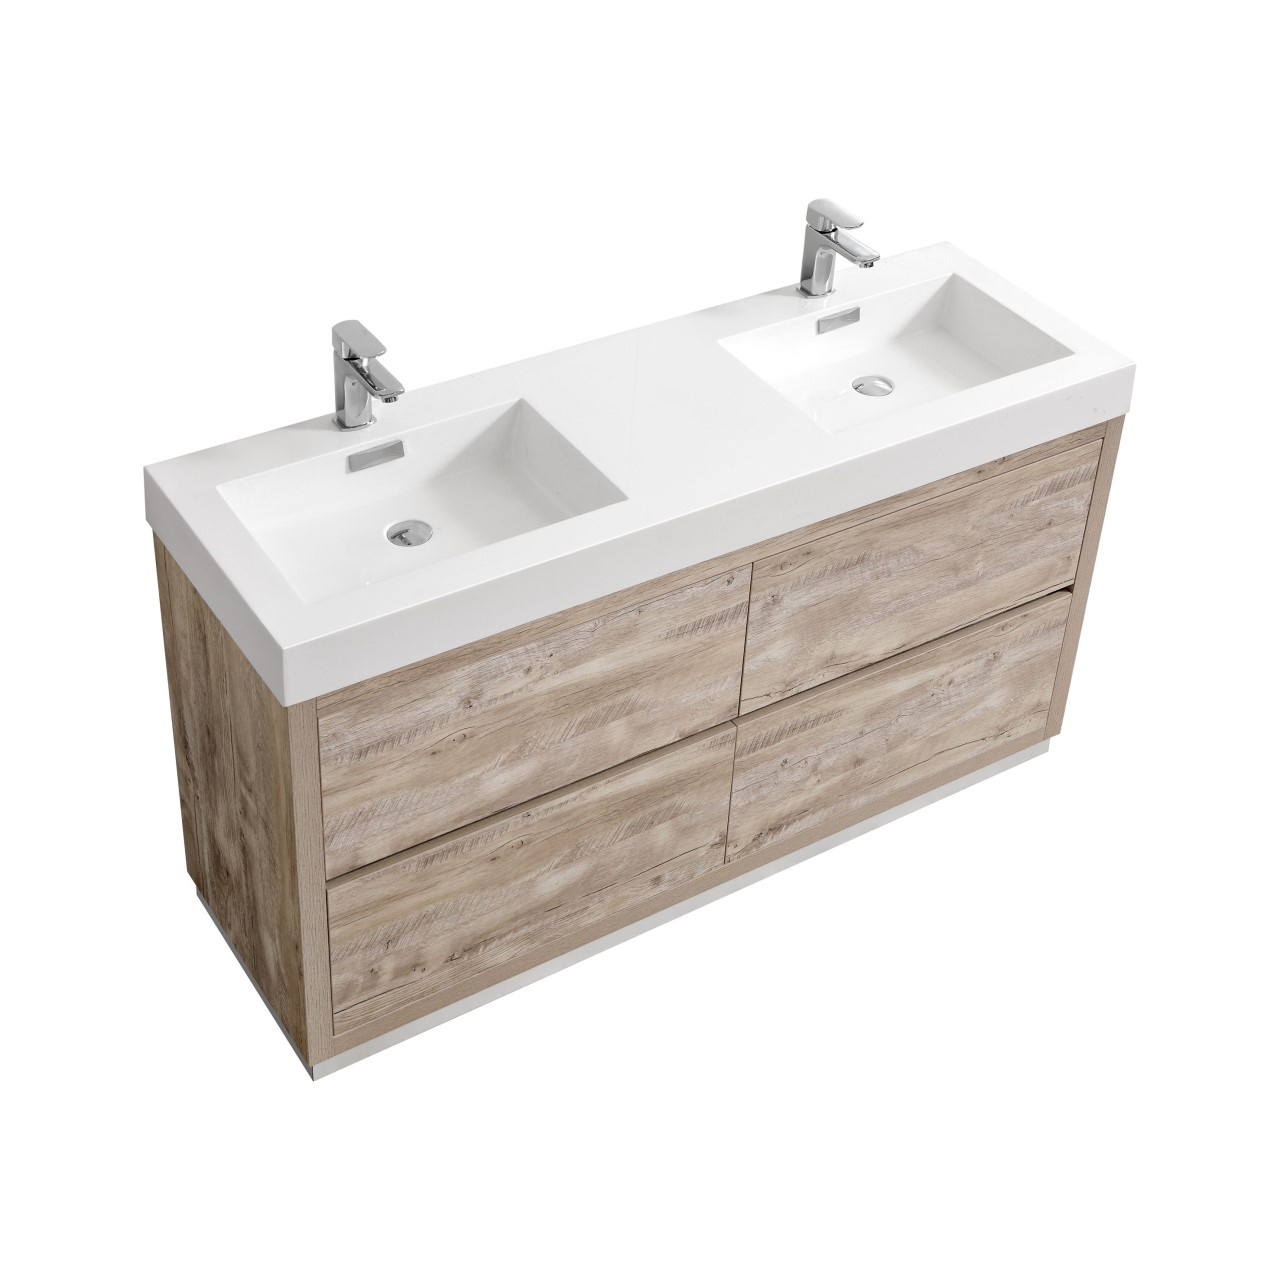 "Modern Lux 60"" Double Sink Nature Wood Free Standing Modern Bathroom Vanity"